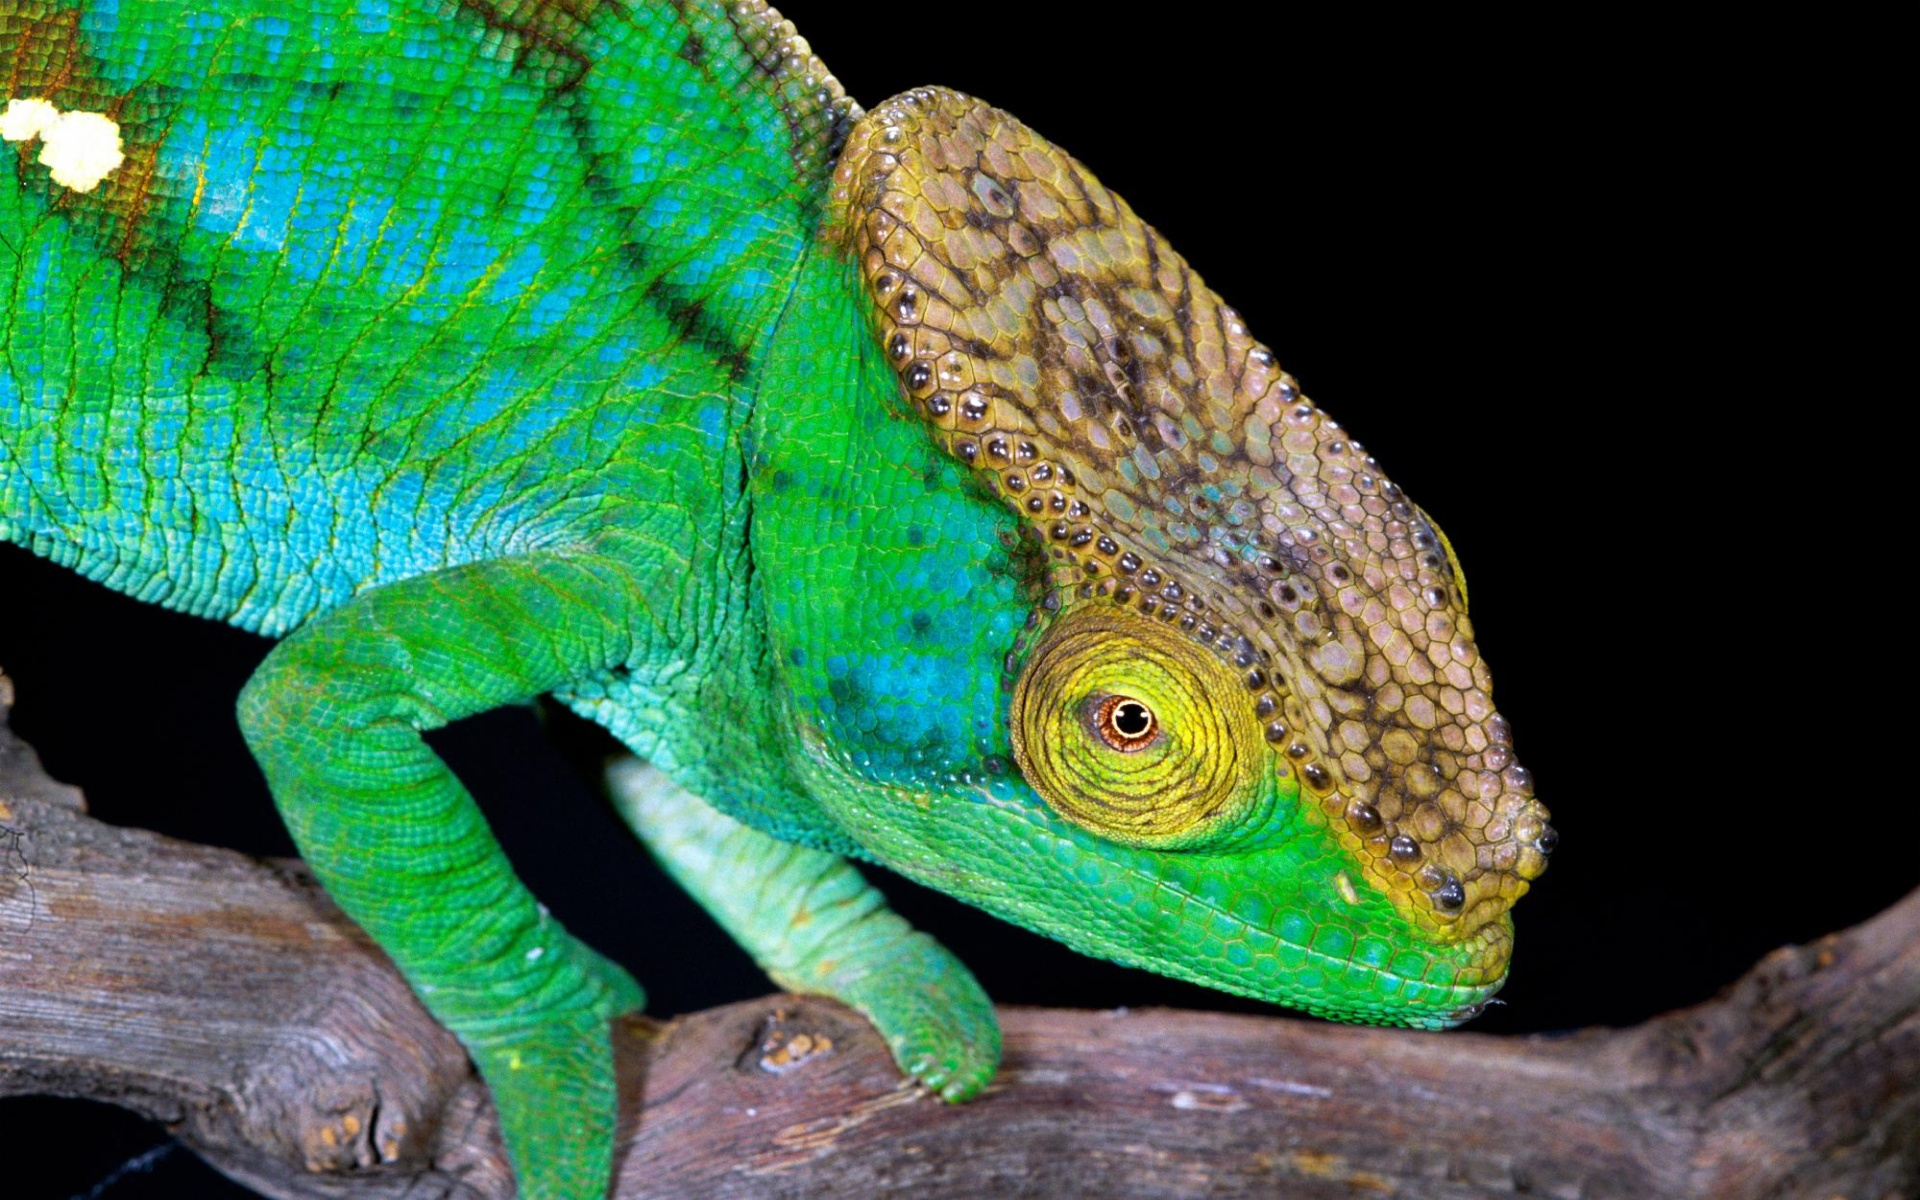 Where The Wild Things Are Wallpaper Hd Green Chameleon Wallpapers Green Chameleon Stock Photos